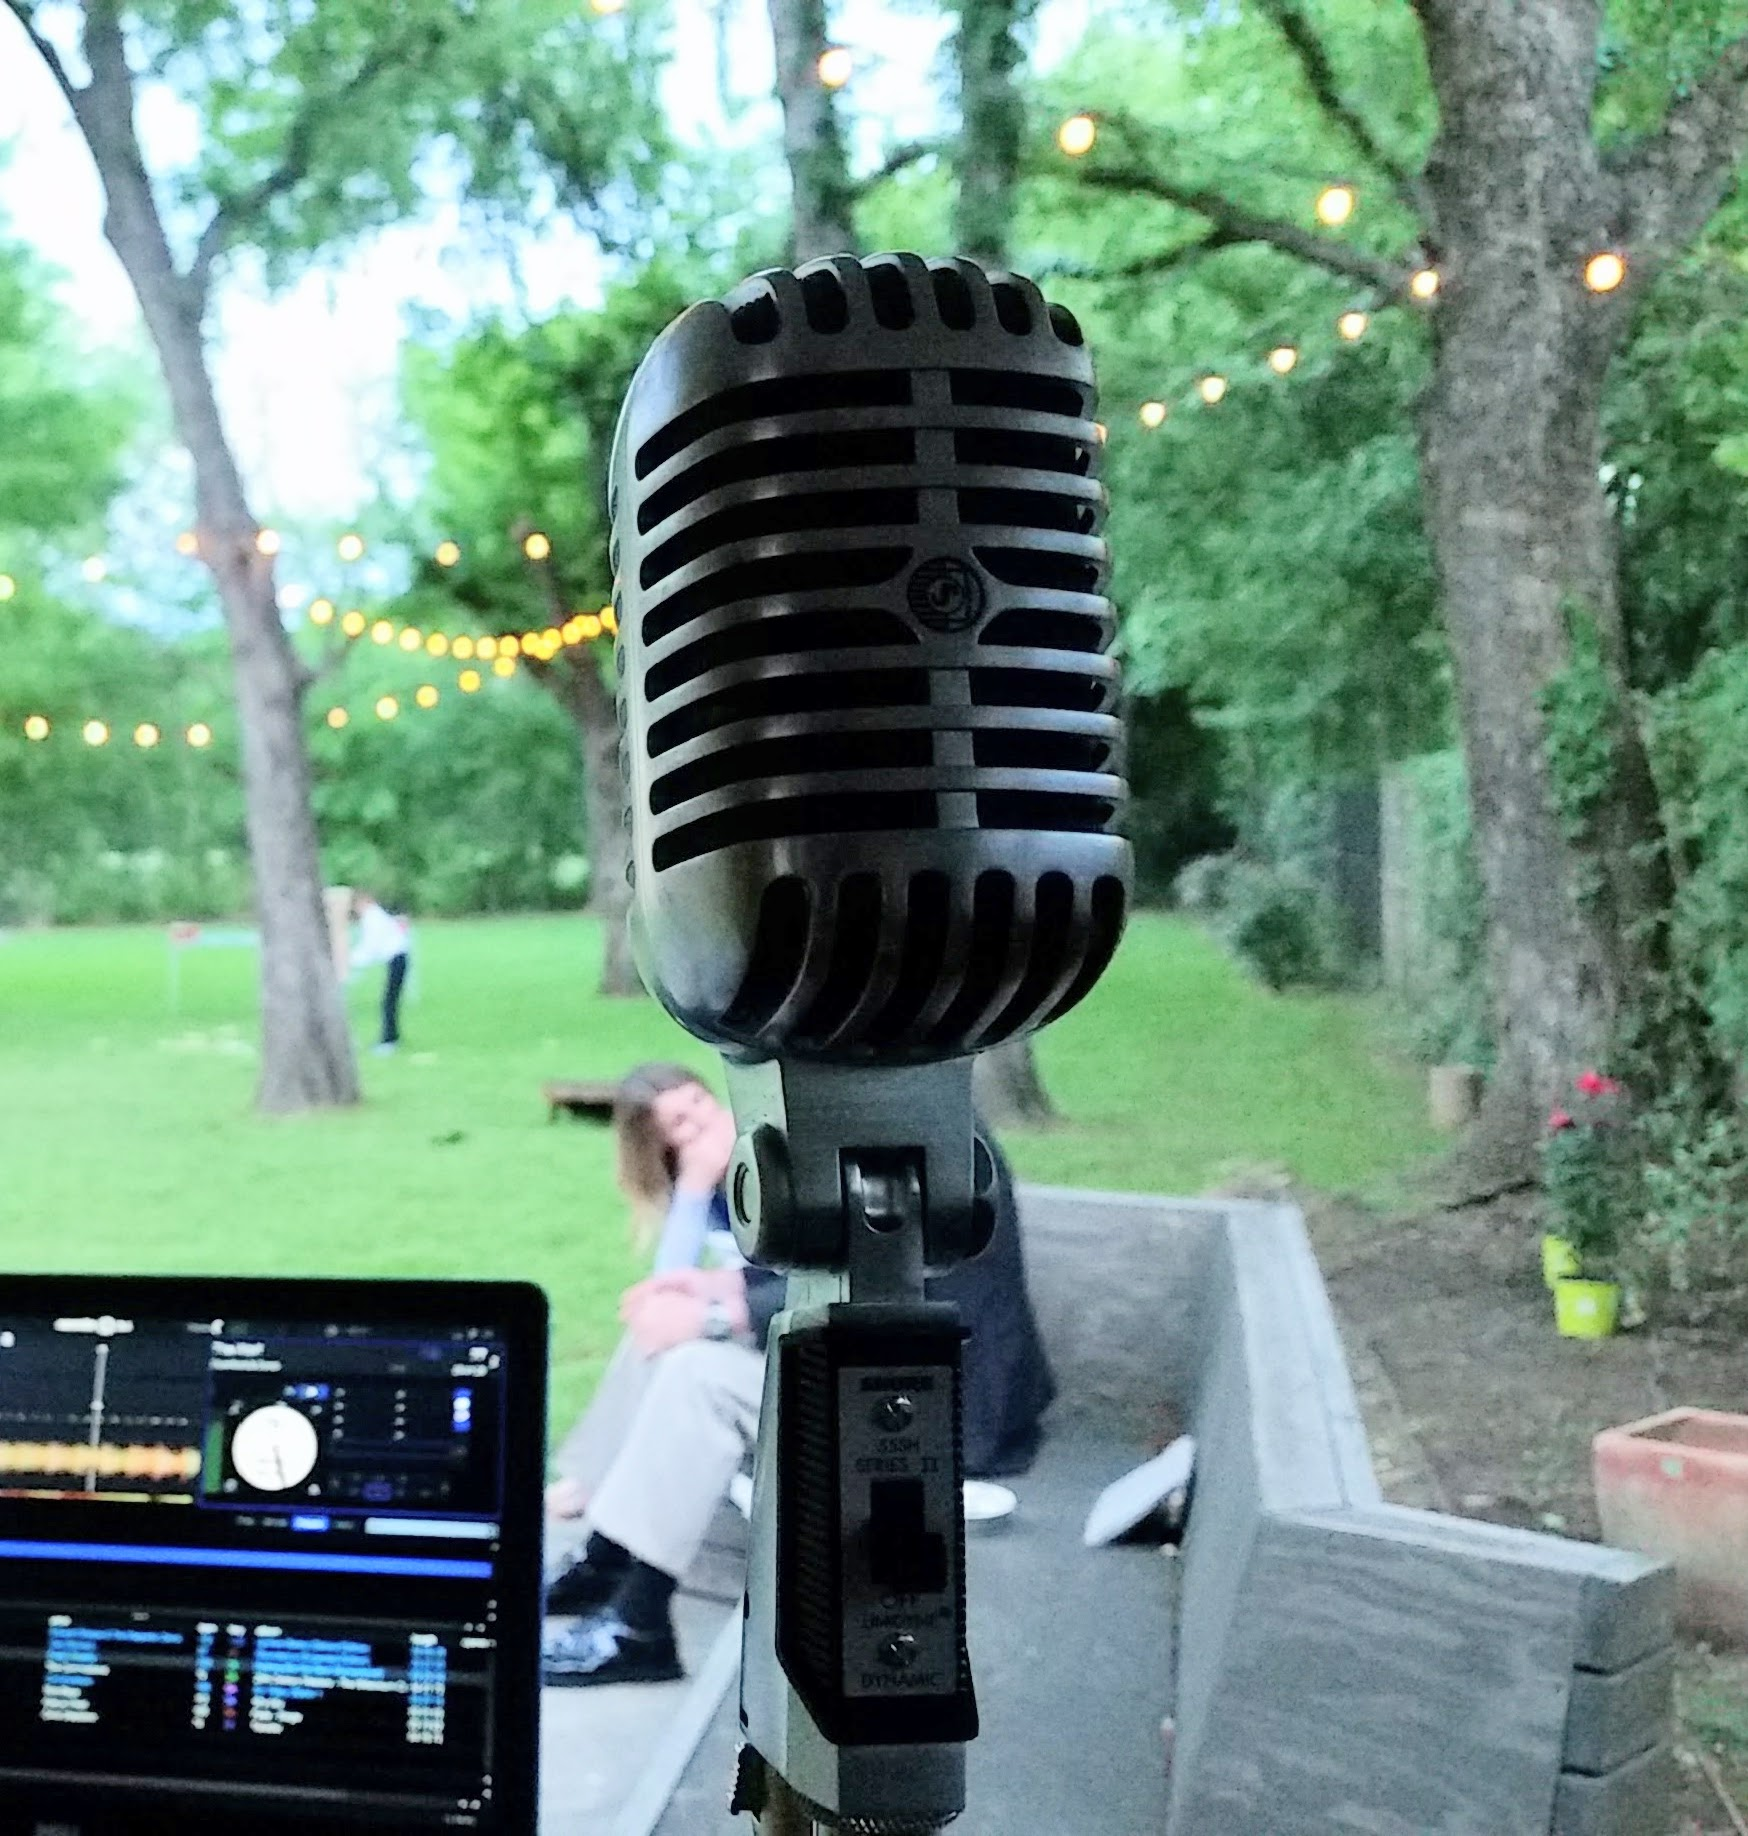 The Microphone - My Shure 55 is a top-of-the-line cardioid mic with a warm, clean sound that only comes from quality mics. And look how PRETTY it is. It's been photographed more than I have!